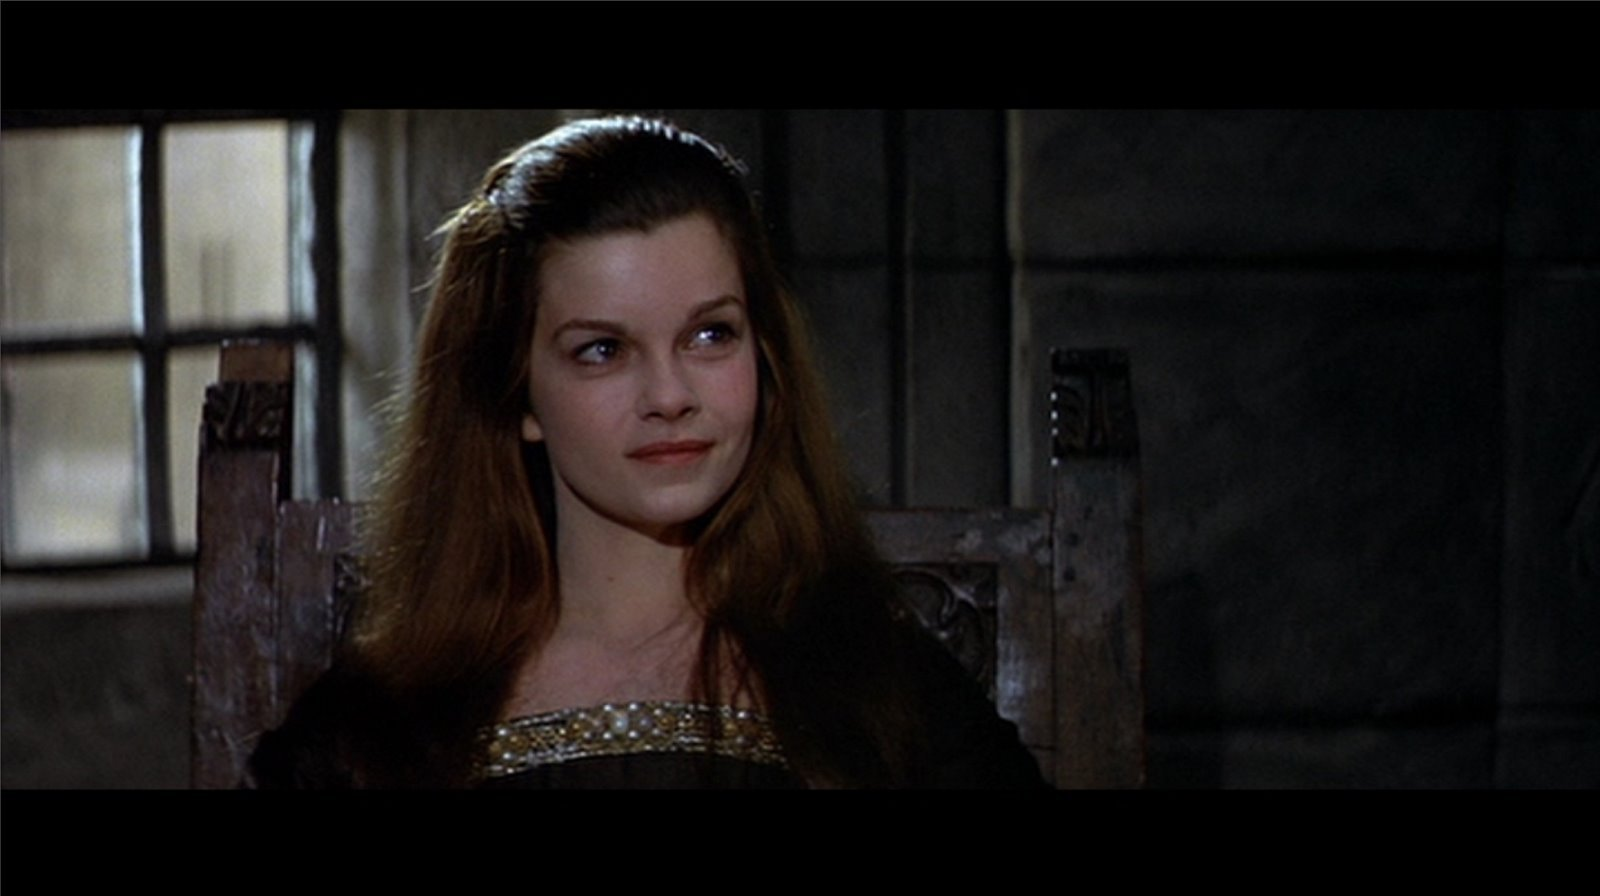 http://images2.fanpop.com/images/photos/7300000/genevieve-bujold-screencap-anne-boleyn-7304801-1600-896.jpg